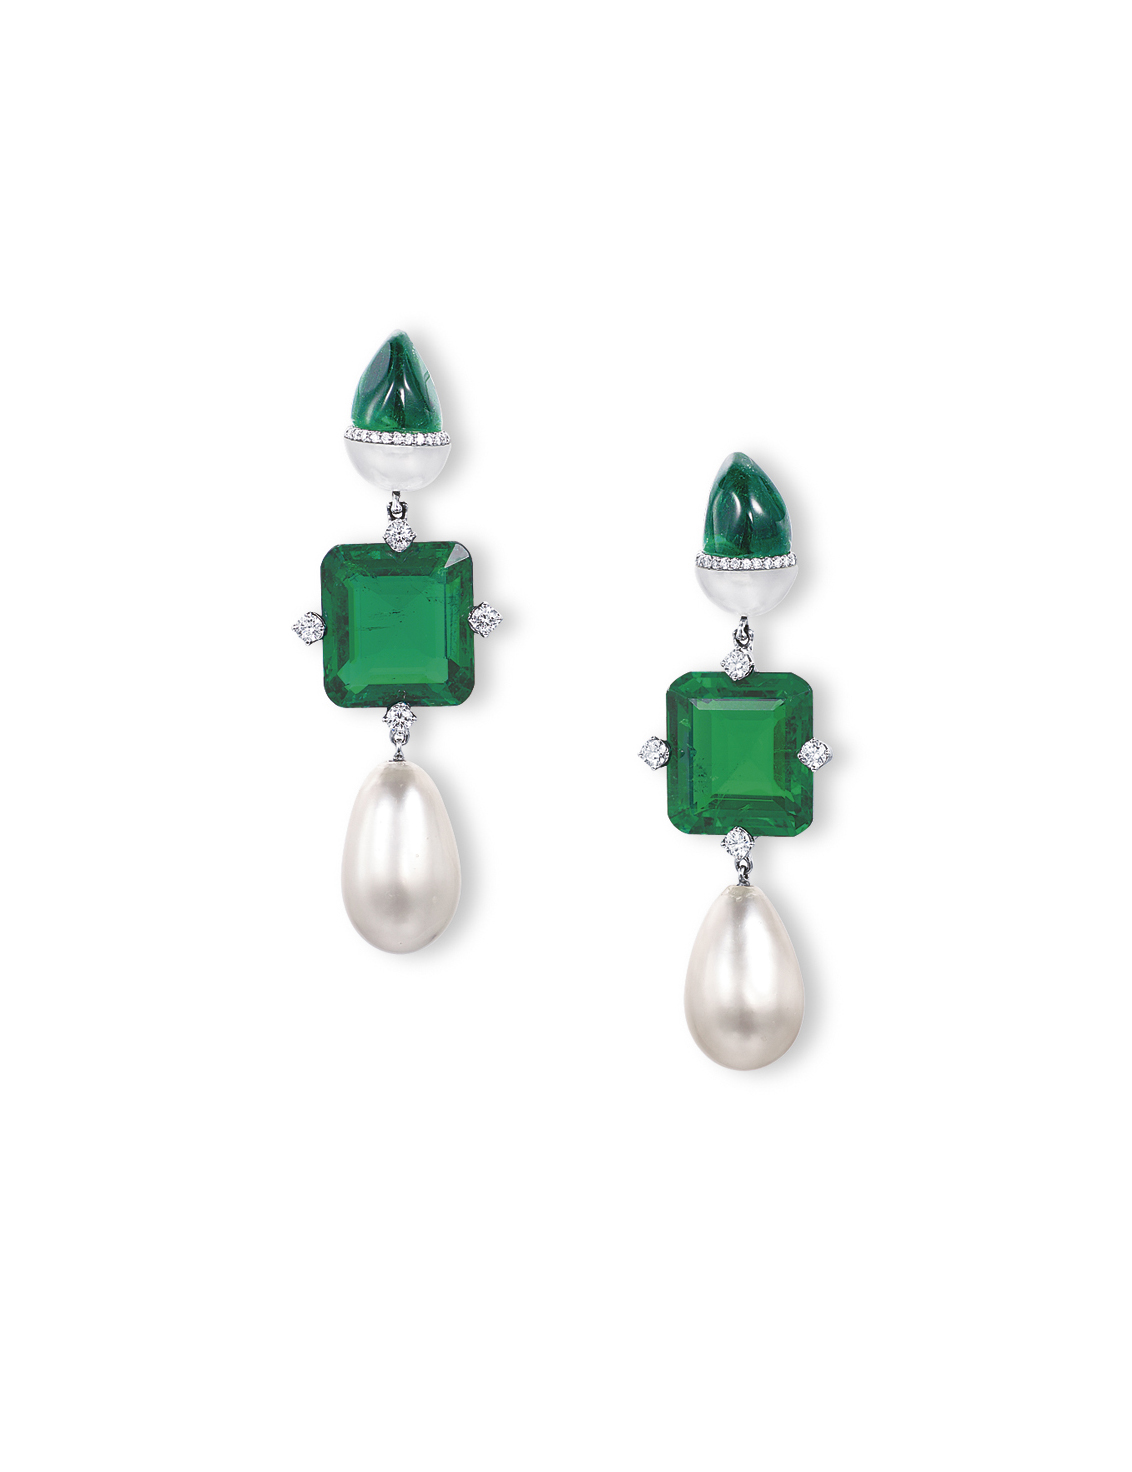 A PAIR OF UNUSUAL EMERALD, NATURAL PEARL AND DIAMOND EAR PENDANTS, BY ETCETERA